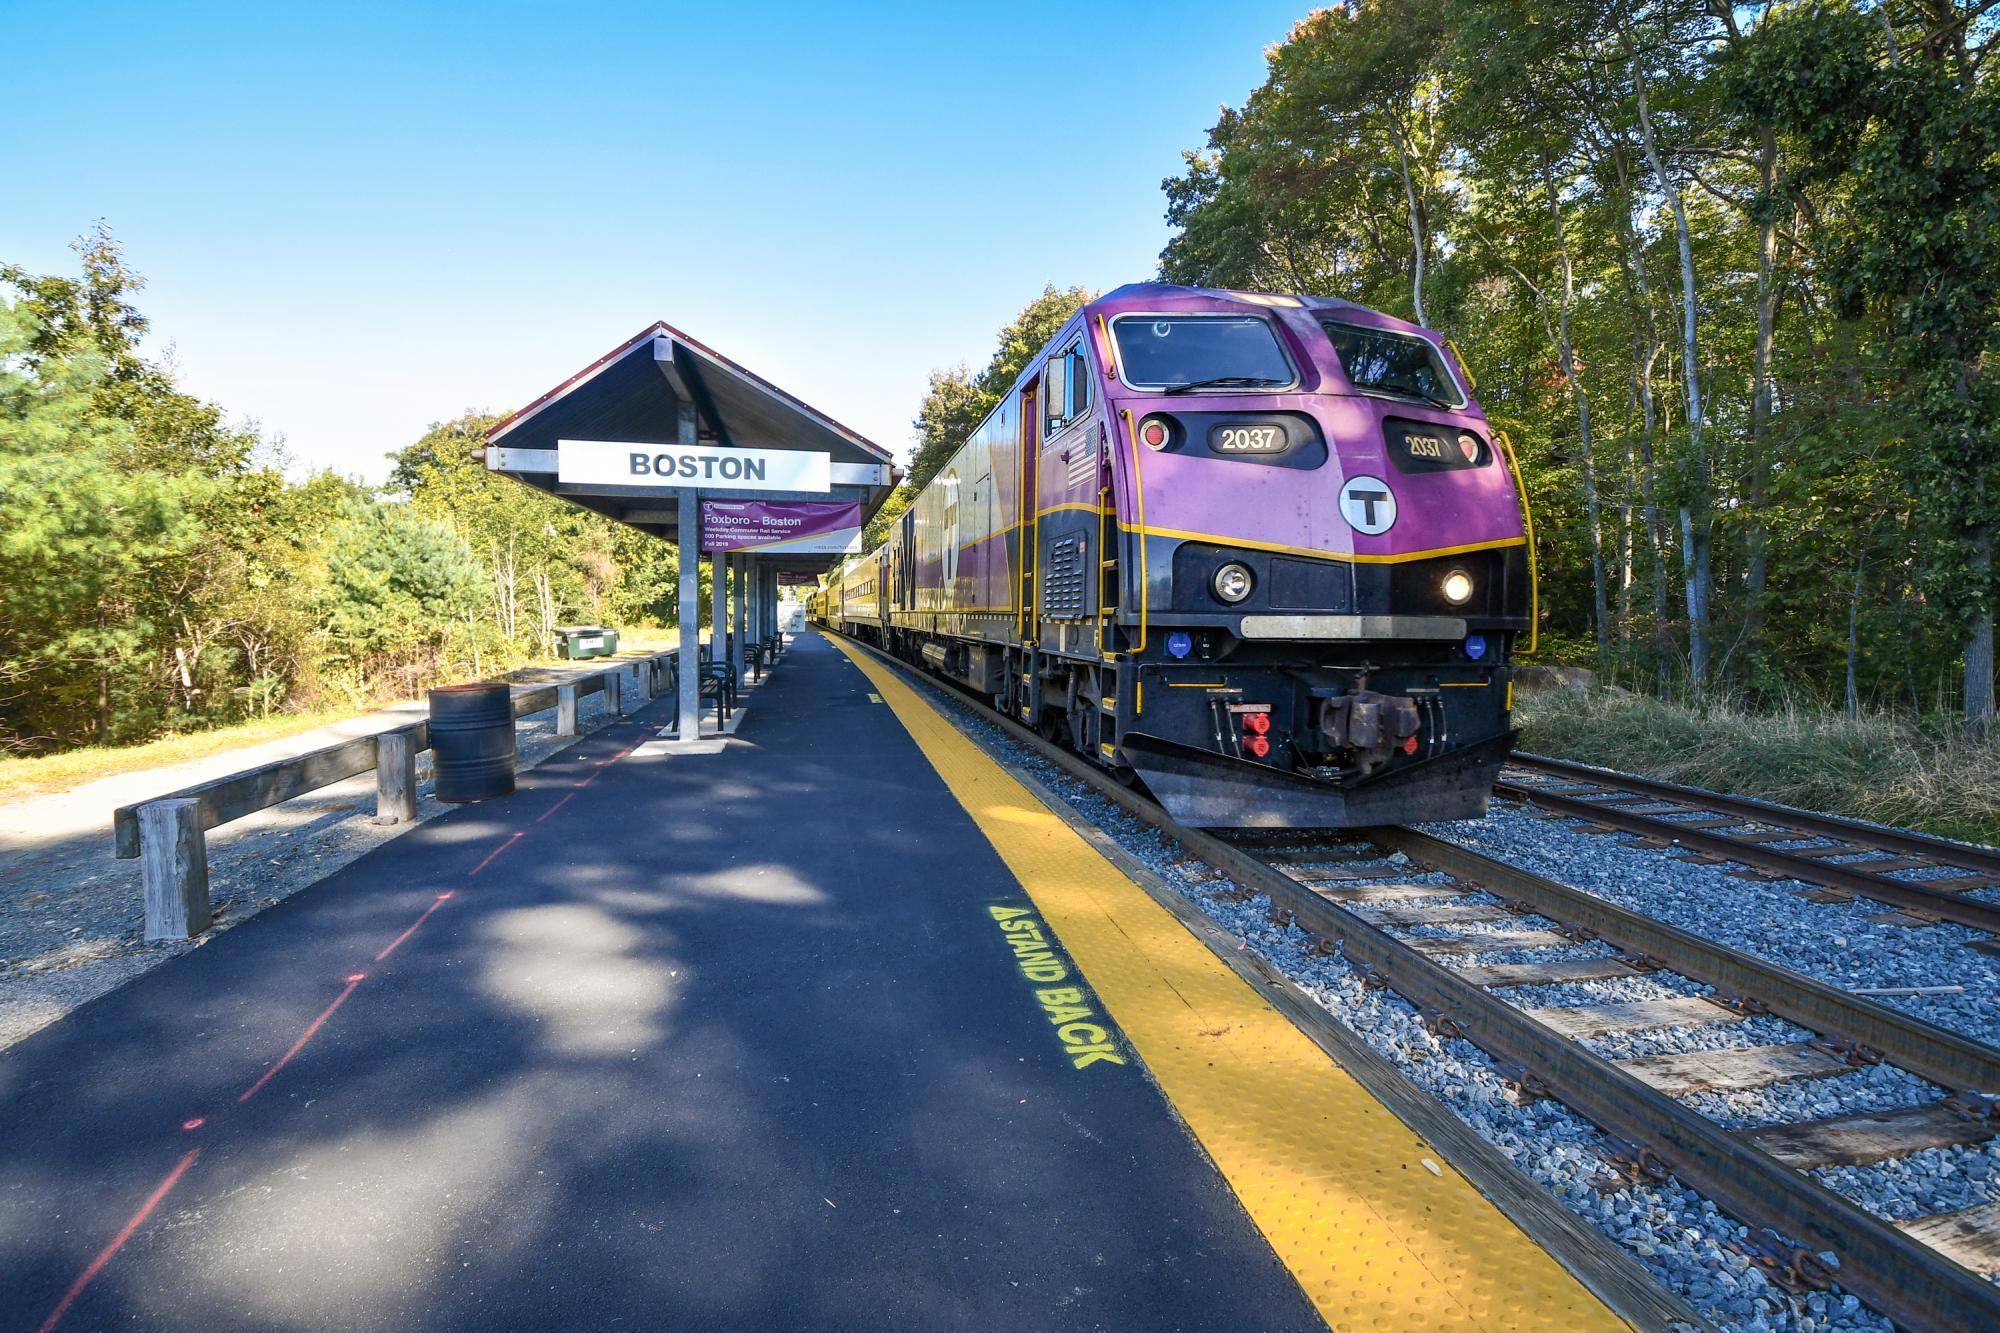 A Commuter Rail train pulls away from Foxboro Station, inbound for Boston. In the background is a sign adveristing the Foxboro - Boston weekday pilot.